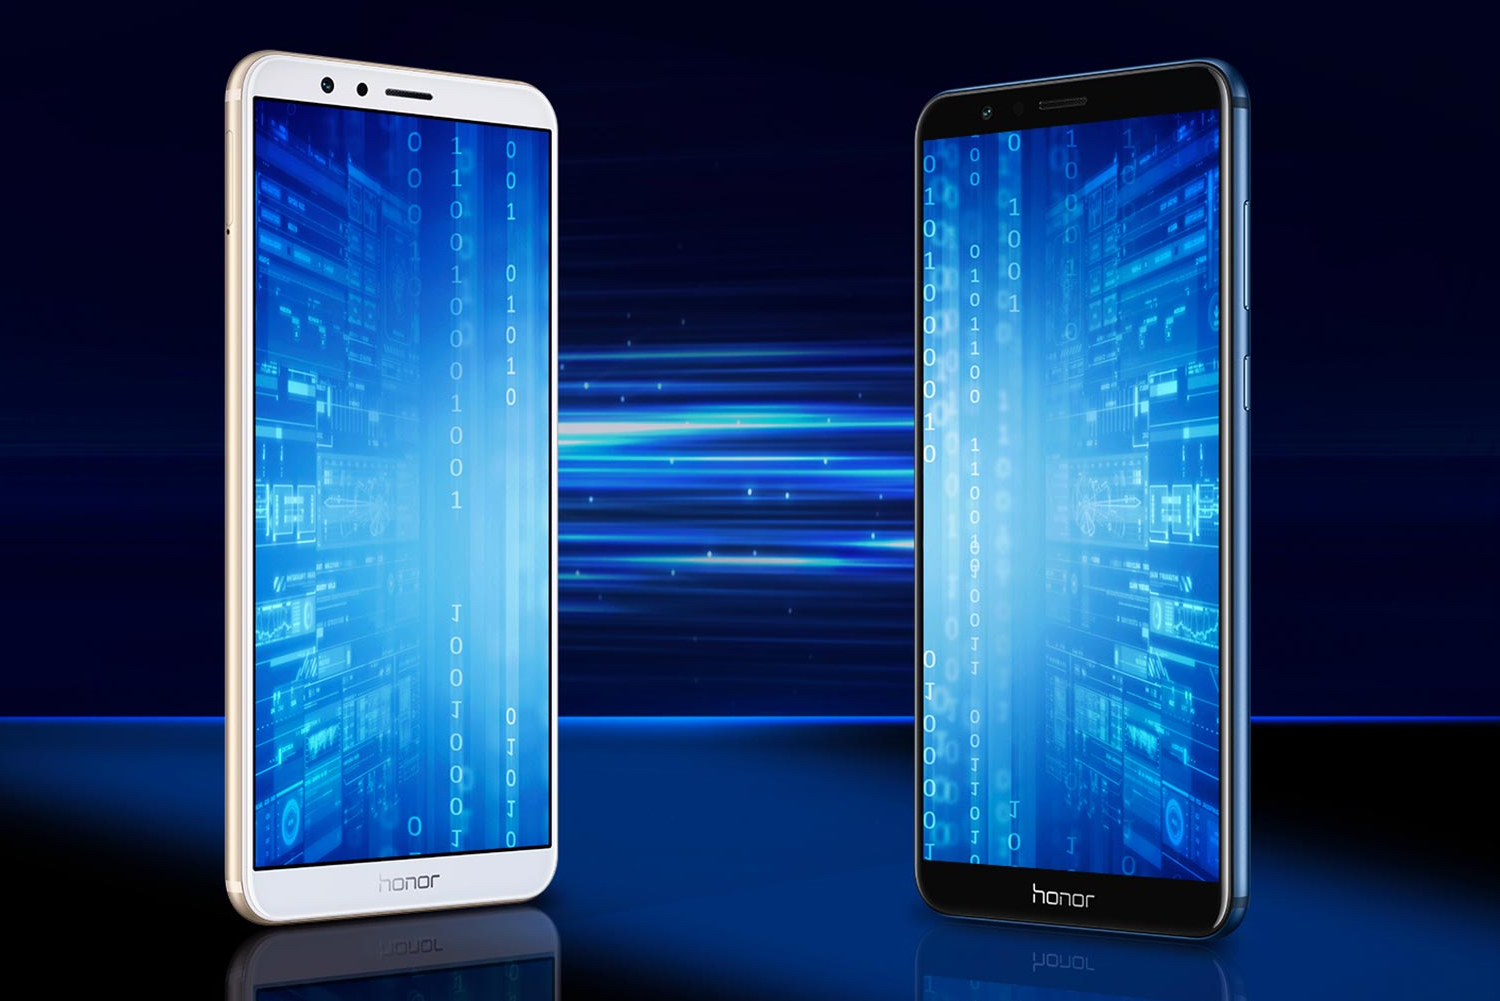 The Honor 7X is coming to the U.S. with all the must-have ...